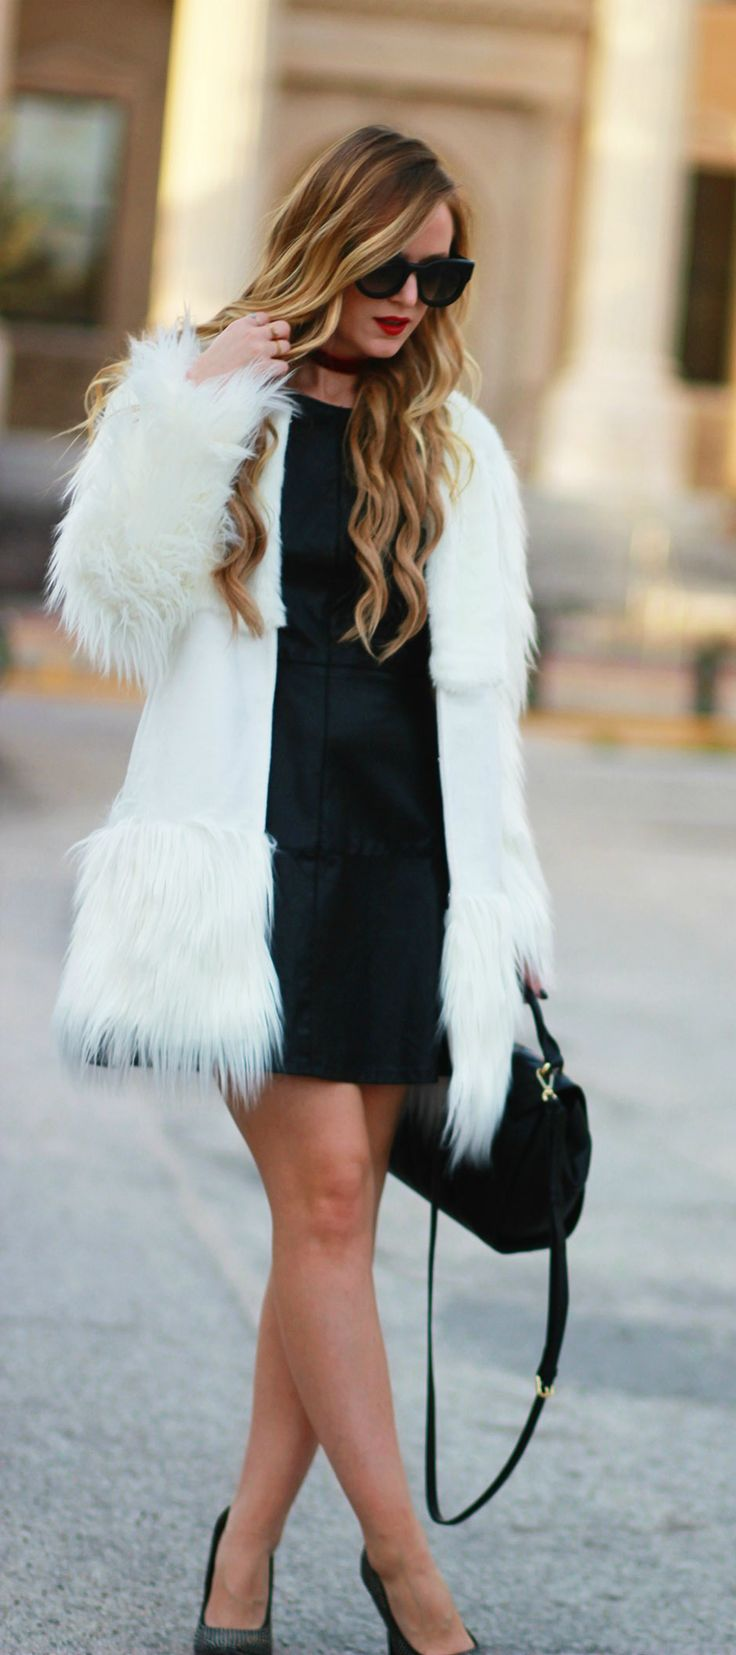 Winter date night outfit styled with a leather mini dress, white fur coat, and sparkly heels